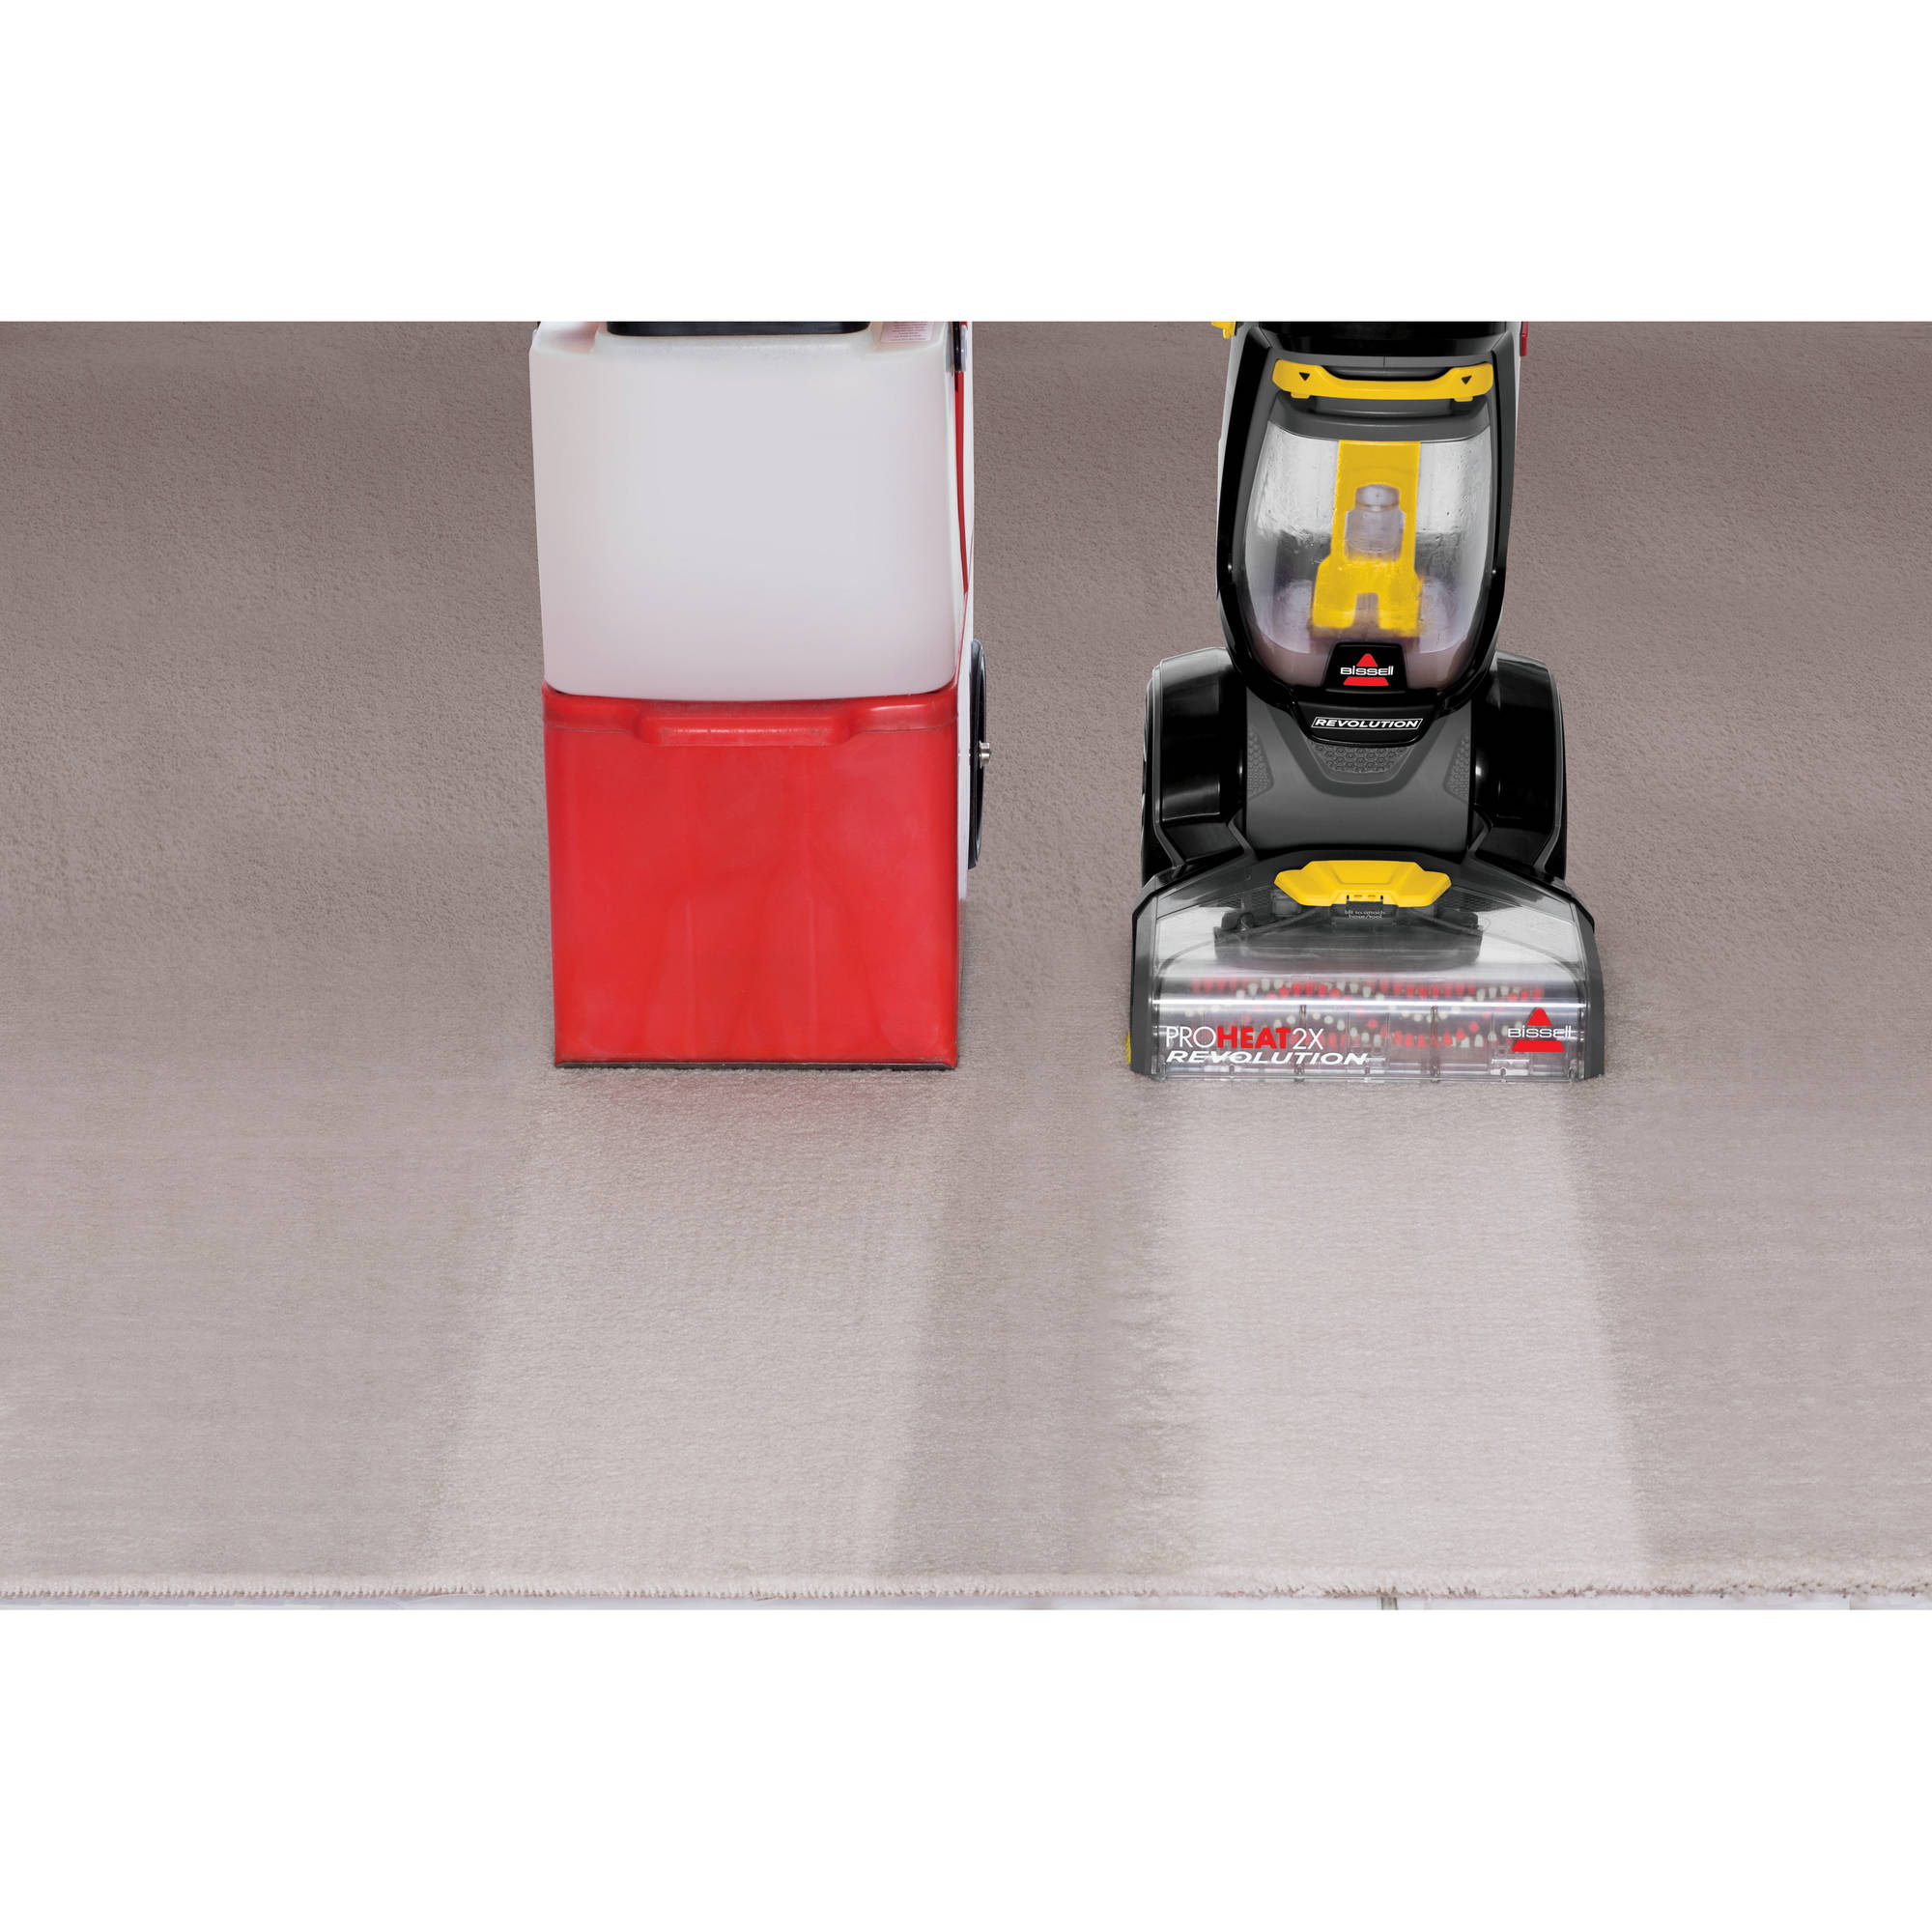 Bissell Proheat 2x Revolution With Antibacterial Formula 1551 Carpet Sweeper Diagram And Parts List For Carpetfloor